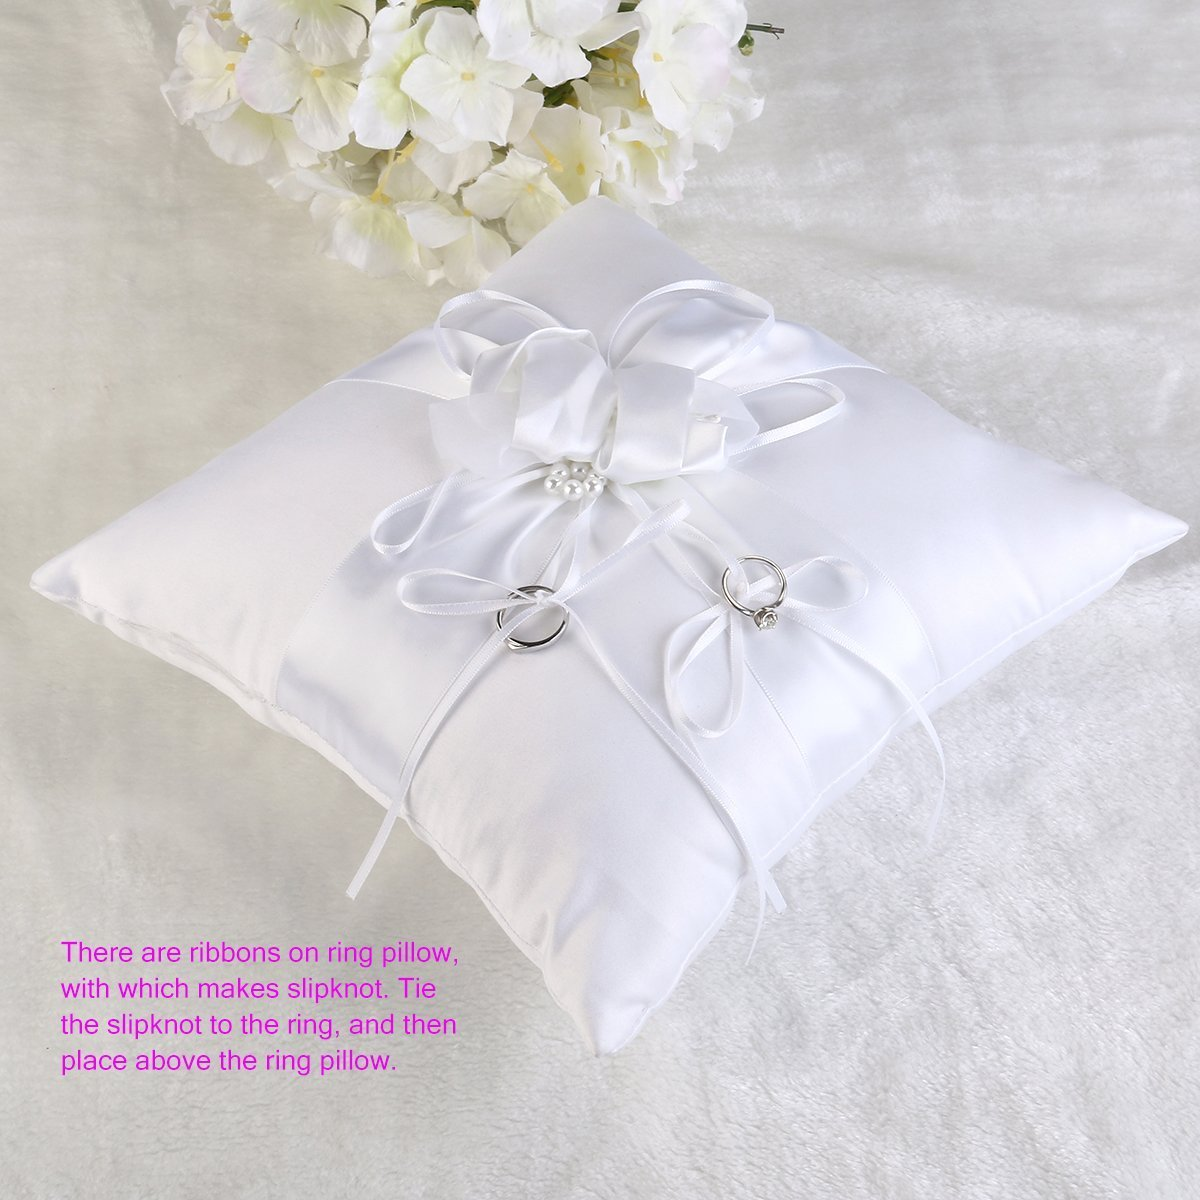 satin bearer white heart crystal pillow pillows store bridal cushion product ring double wedding fashion ceremony